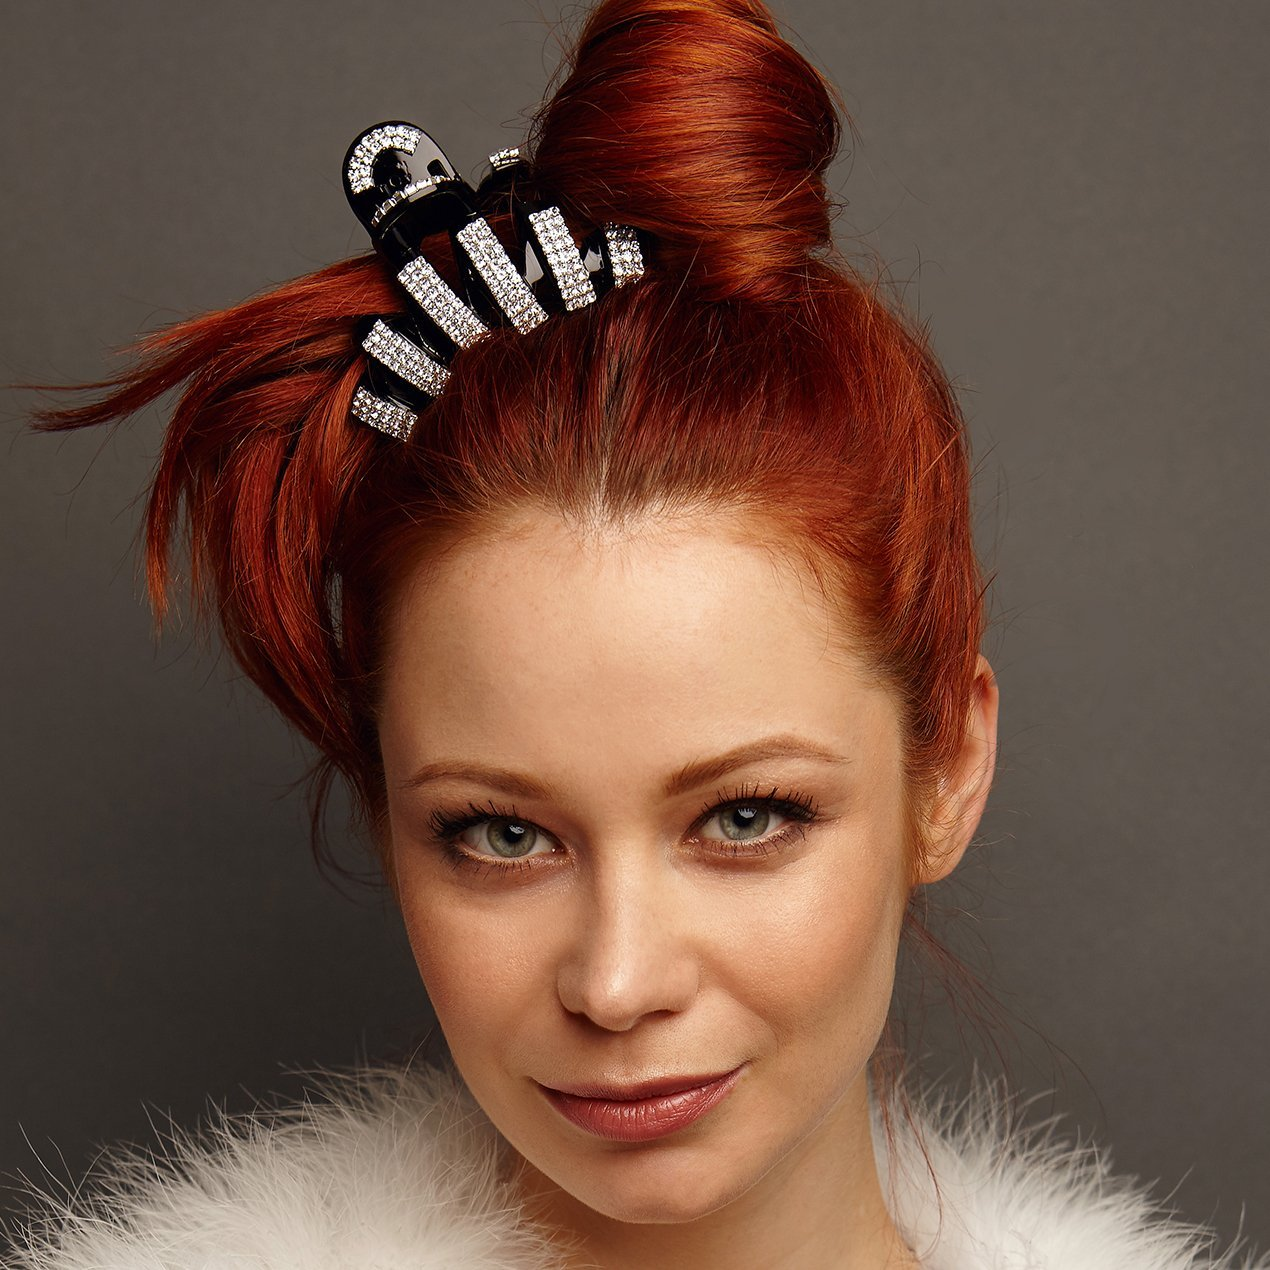 how-to-style-hair-accessories-claw-clips-butterfly-banana-mini-black-elegant.jpg